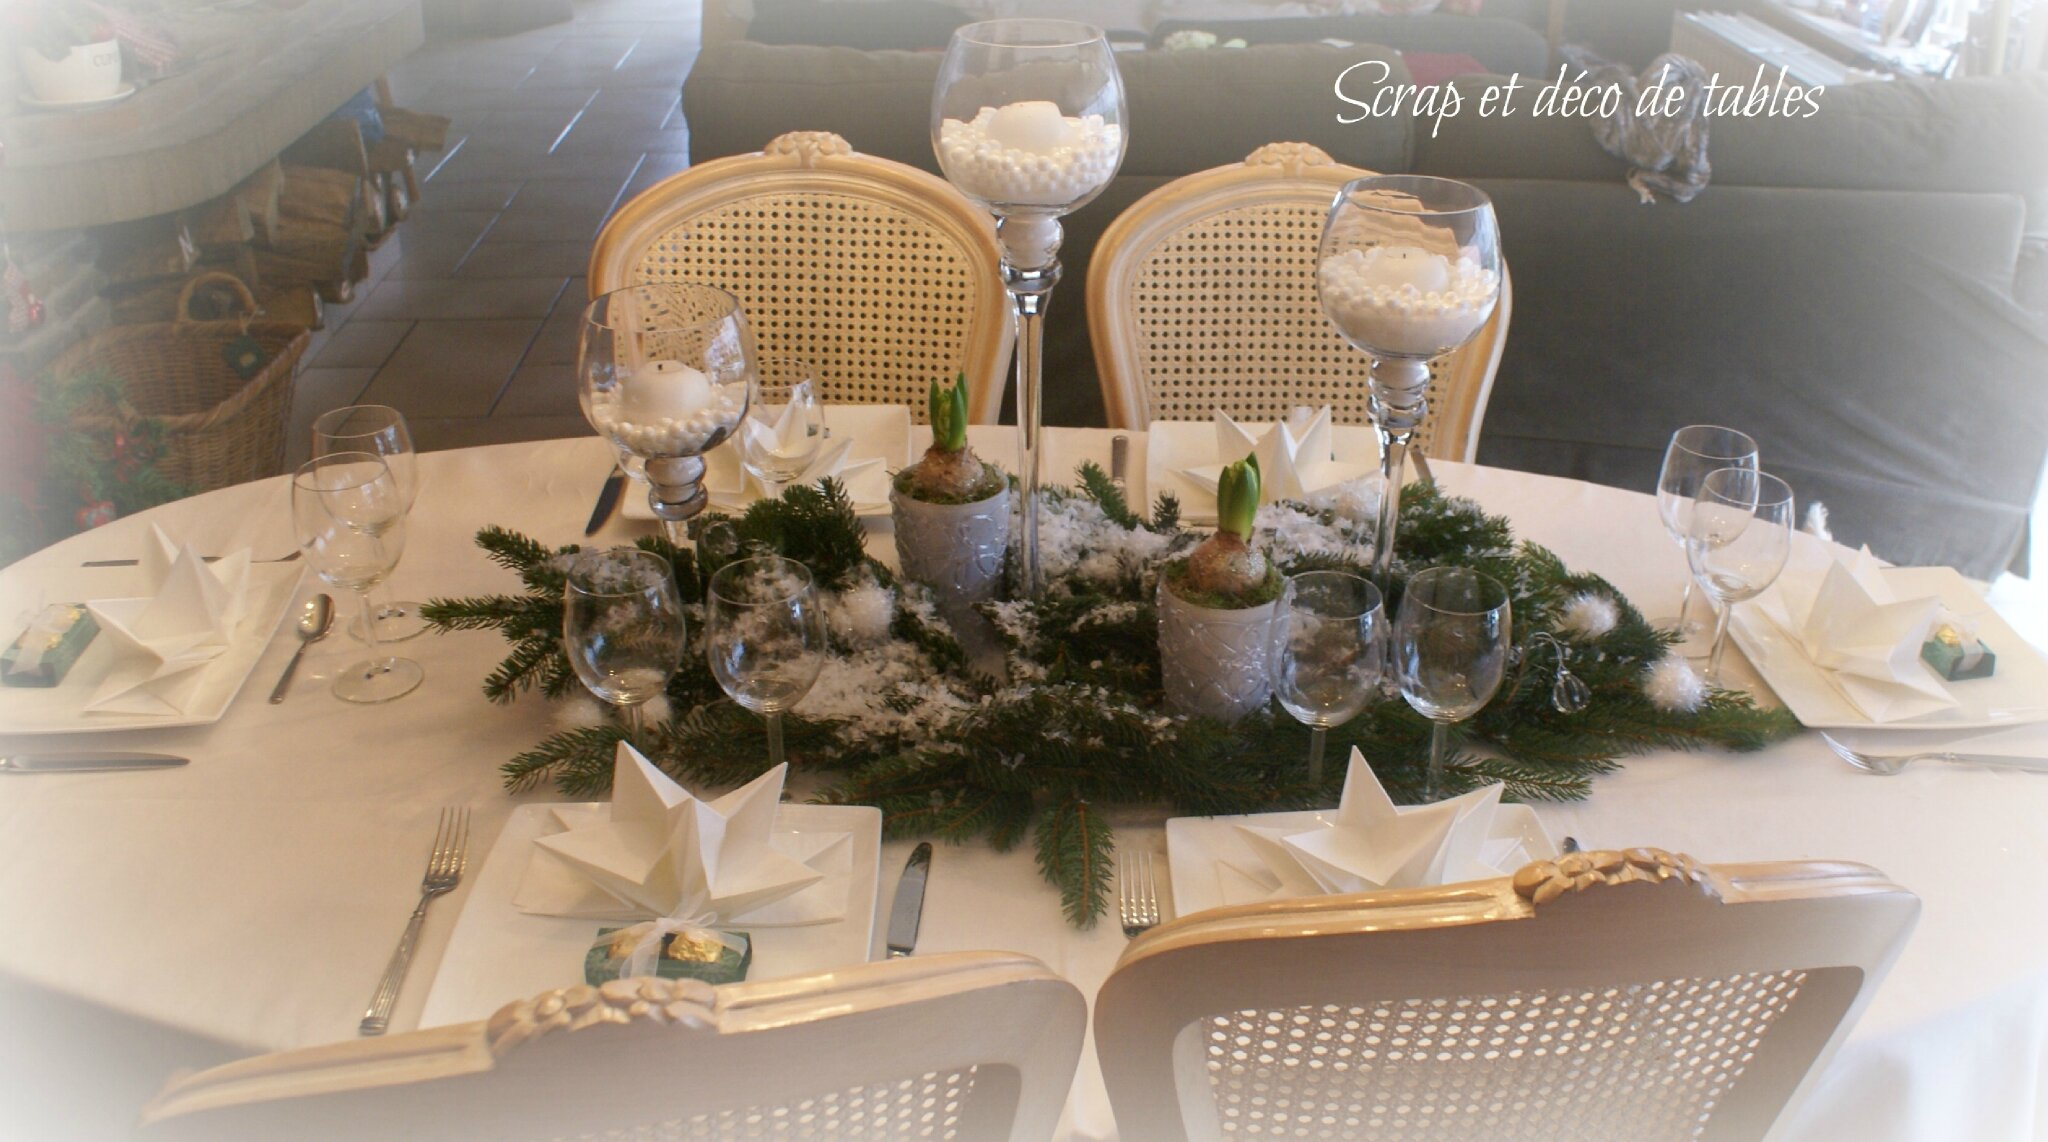 Deco table de no l en blanc scrap et d co de tables - Decoration de table de noel blanche ...